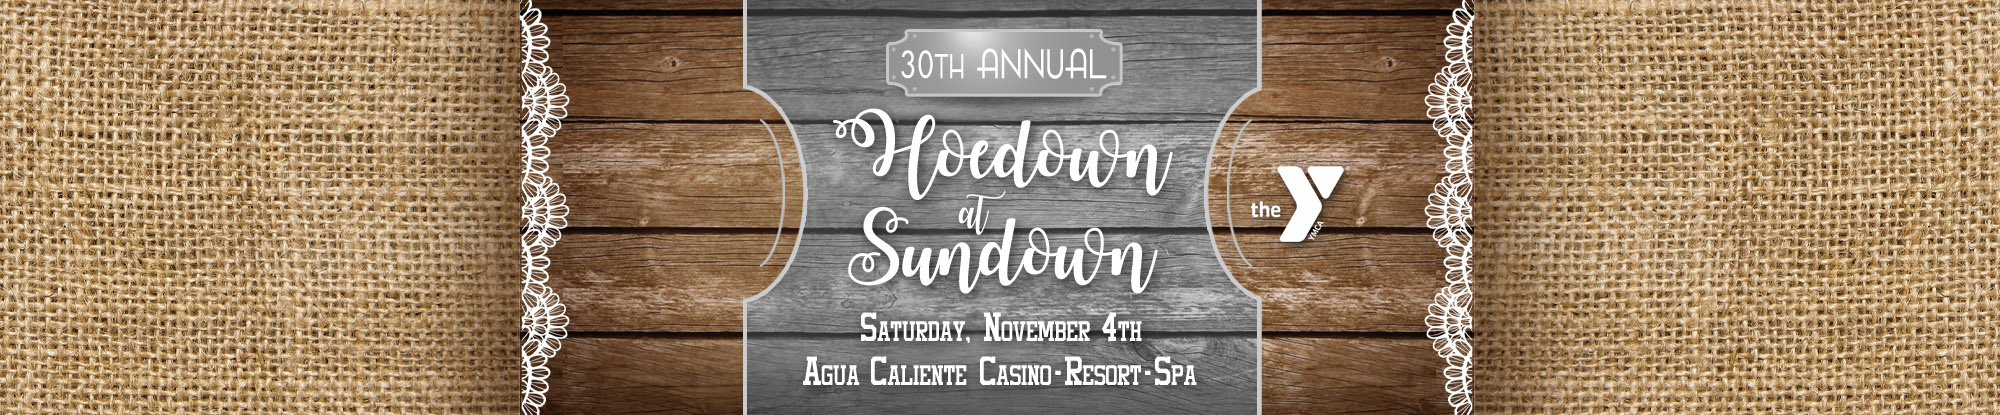 Hoedown at Sundown - Join us Saturday, November 4th